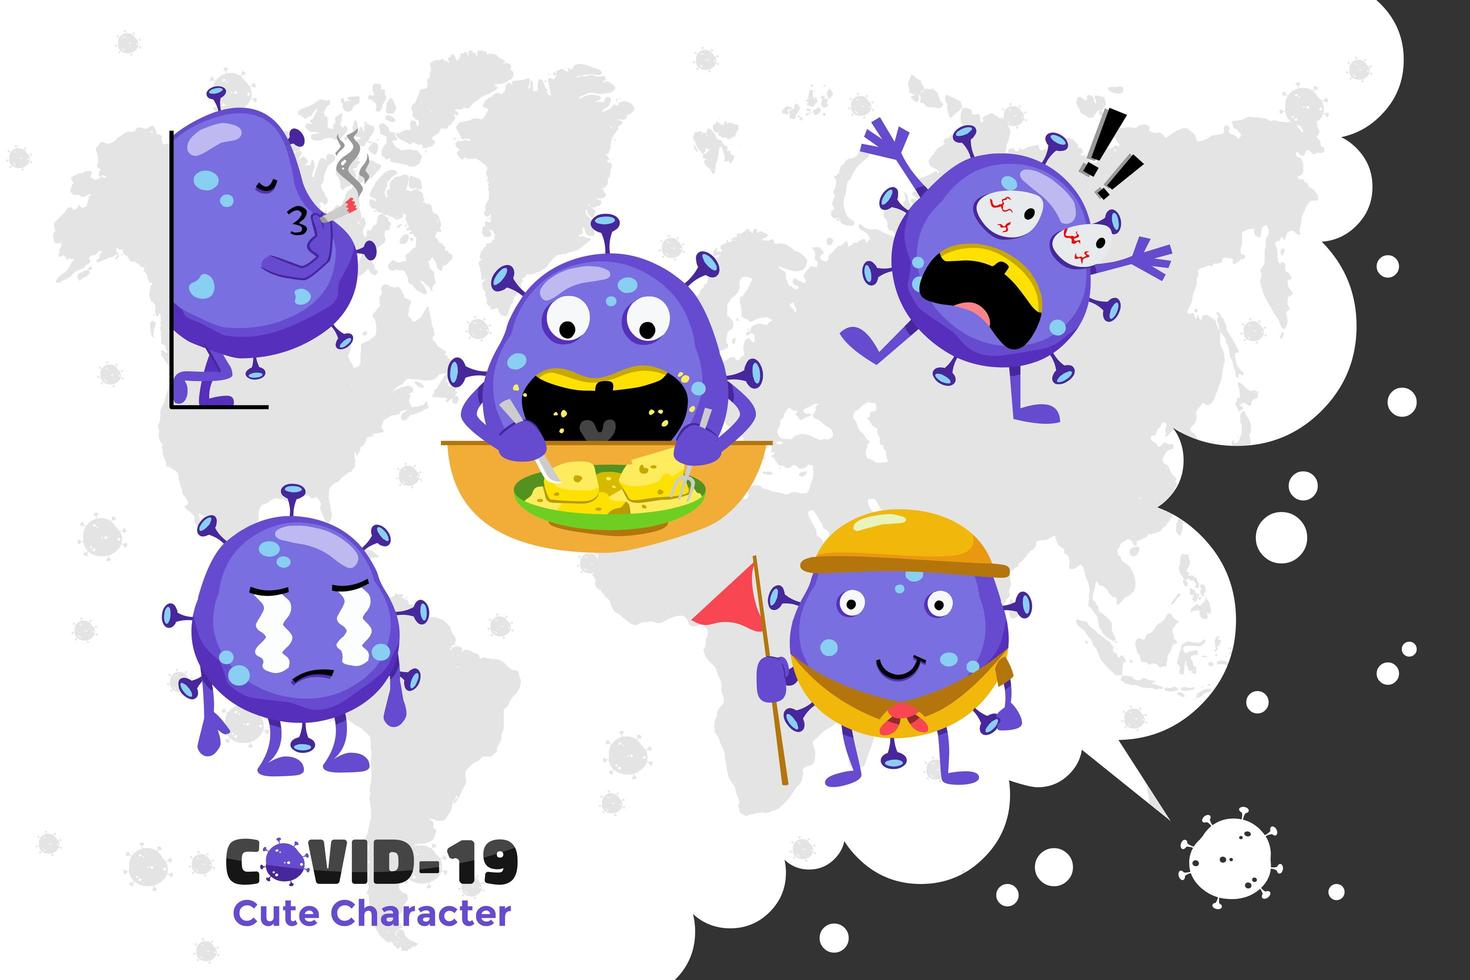 Covid-19 Character Design vector